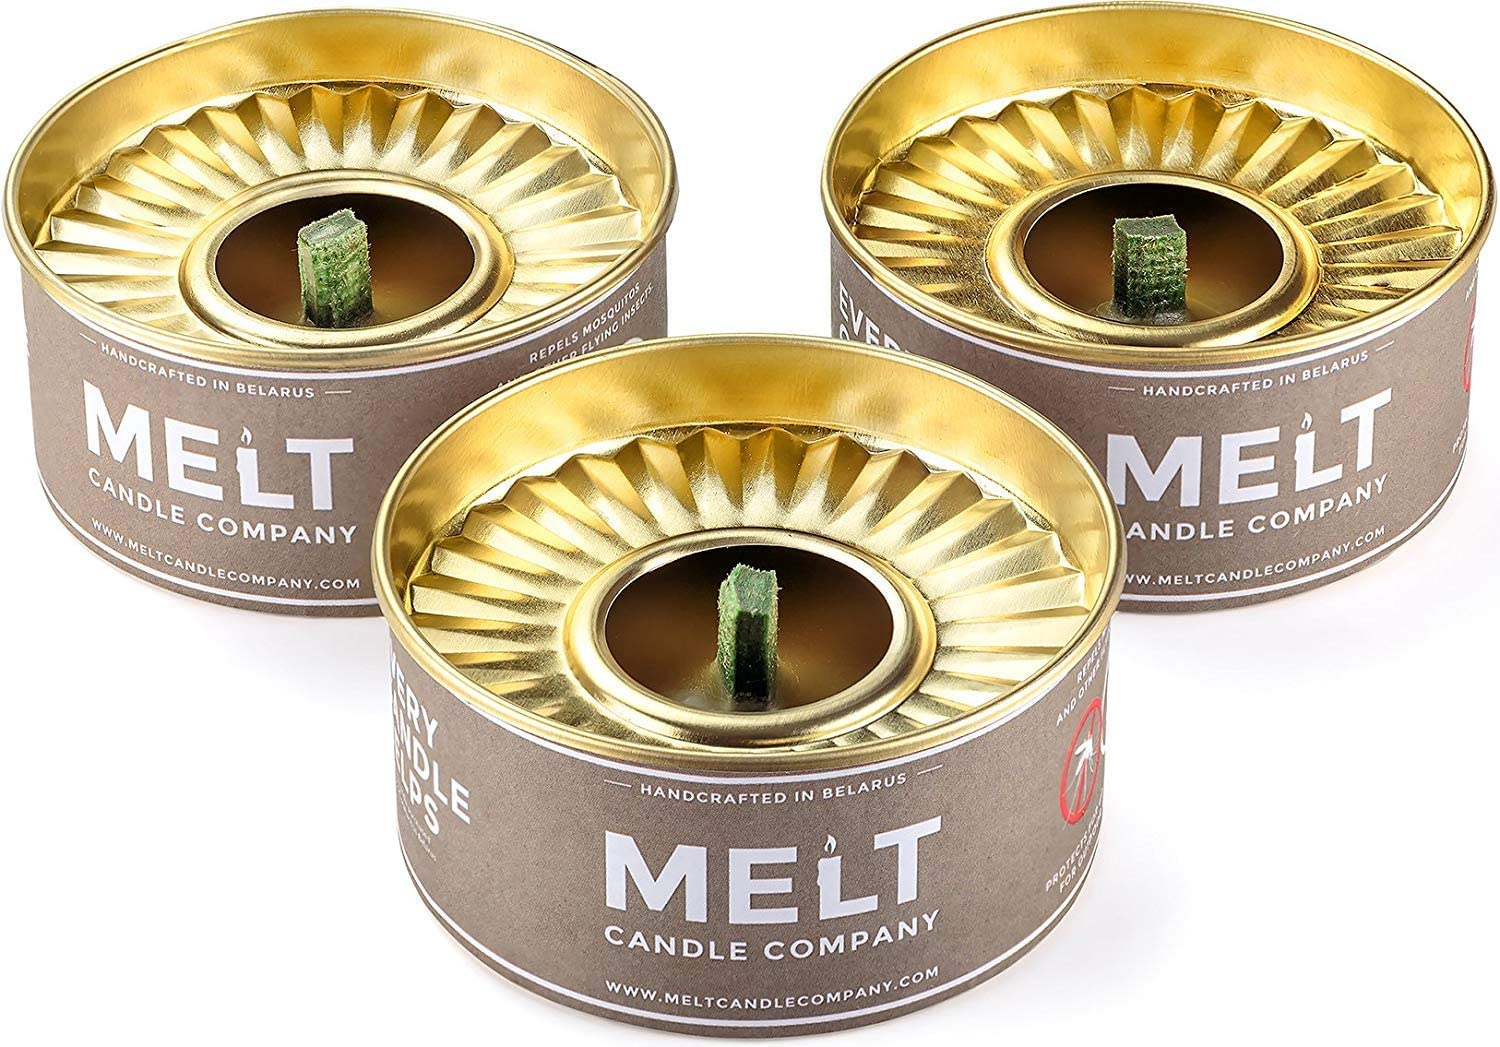 5 Chicago Mall ☆ popular Melt Candle Company Set of Candles Outdoor 3